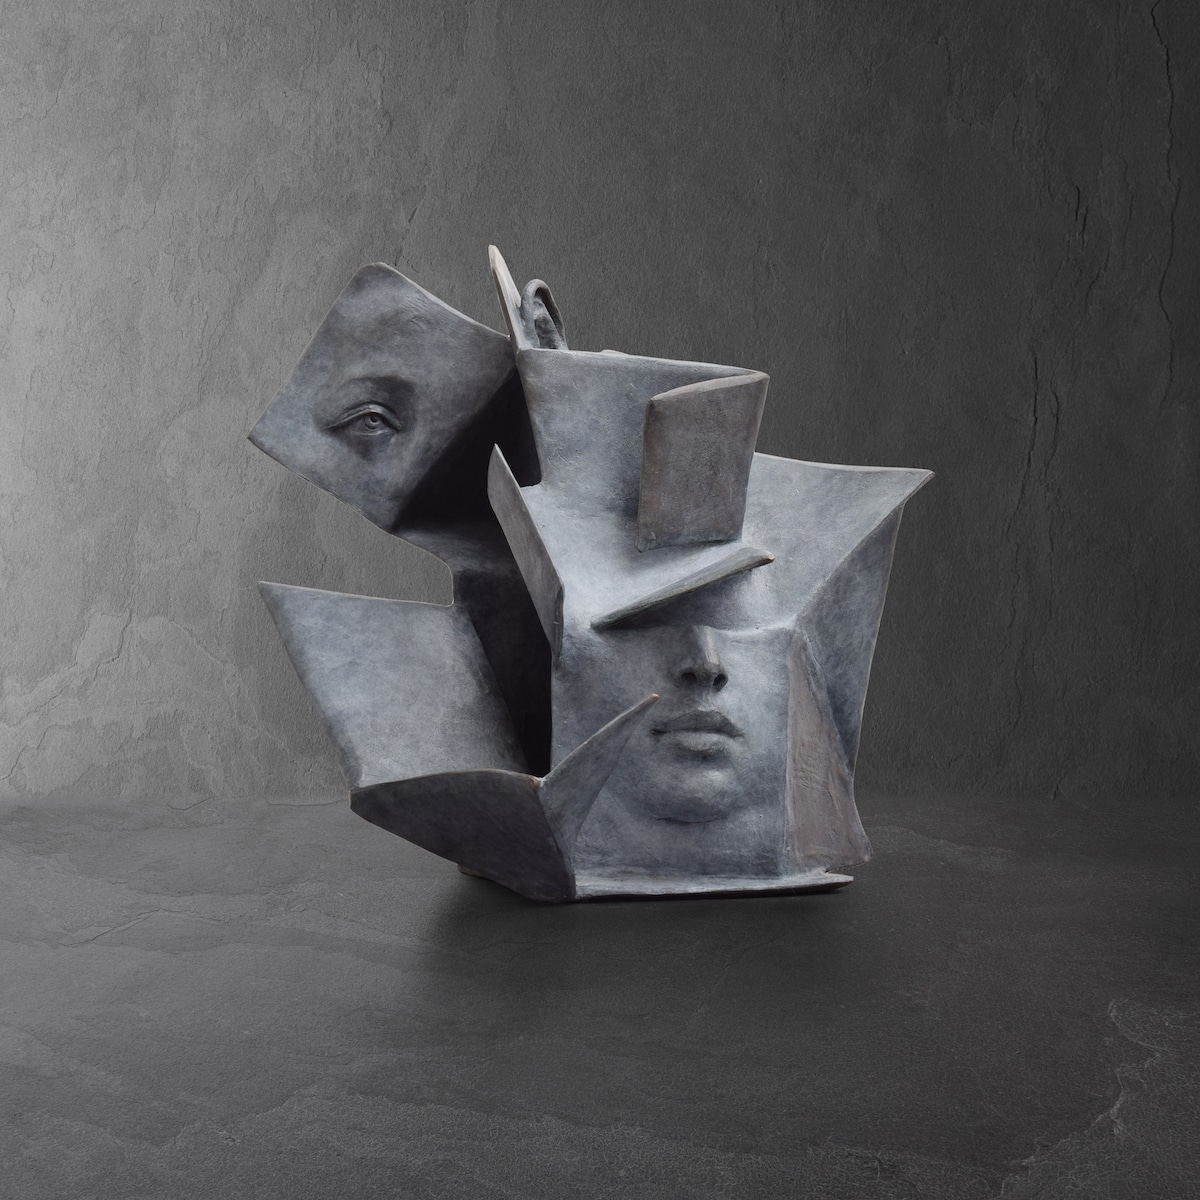 cubic-paola-grizi-literary-sculptures.jpg